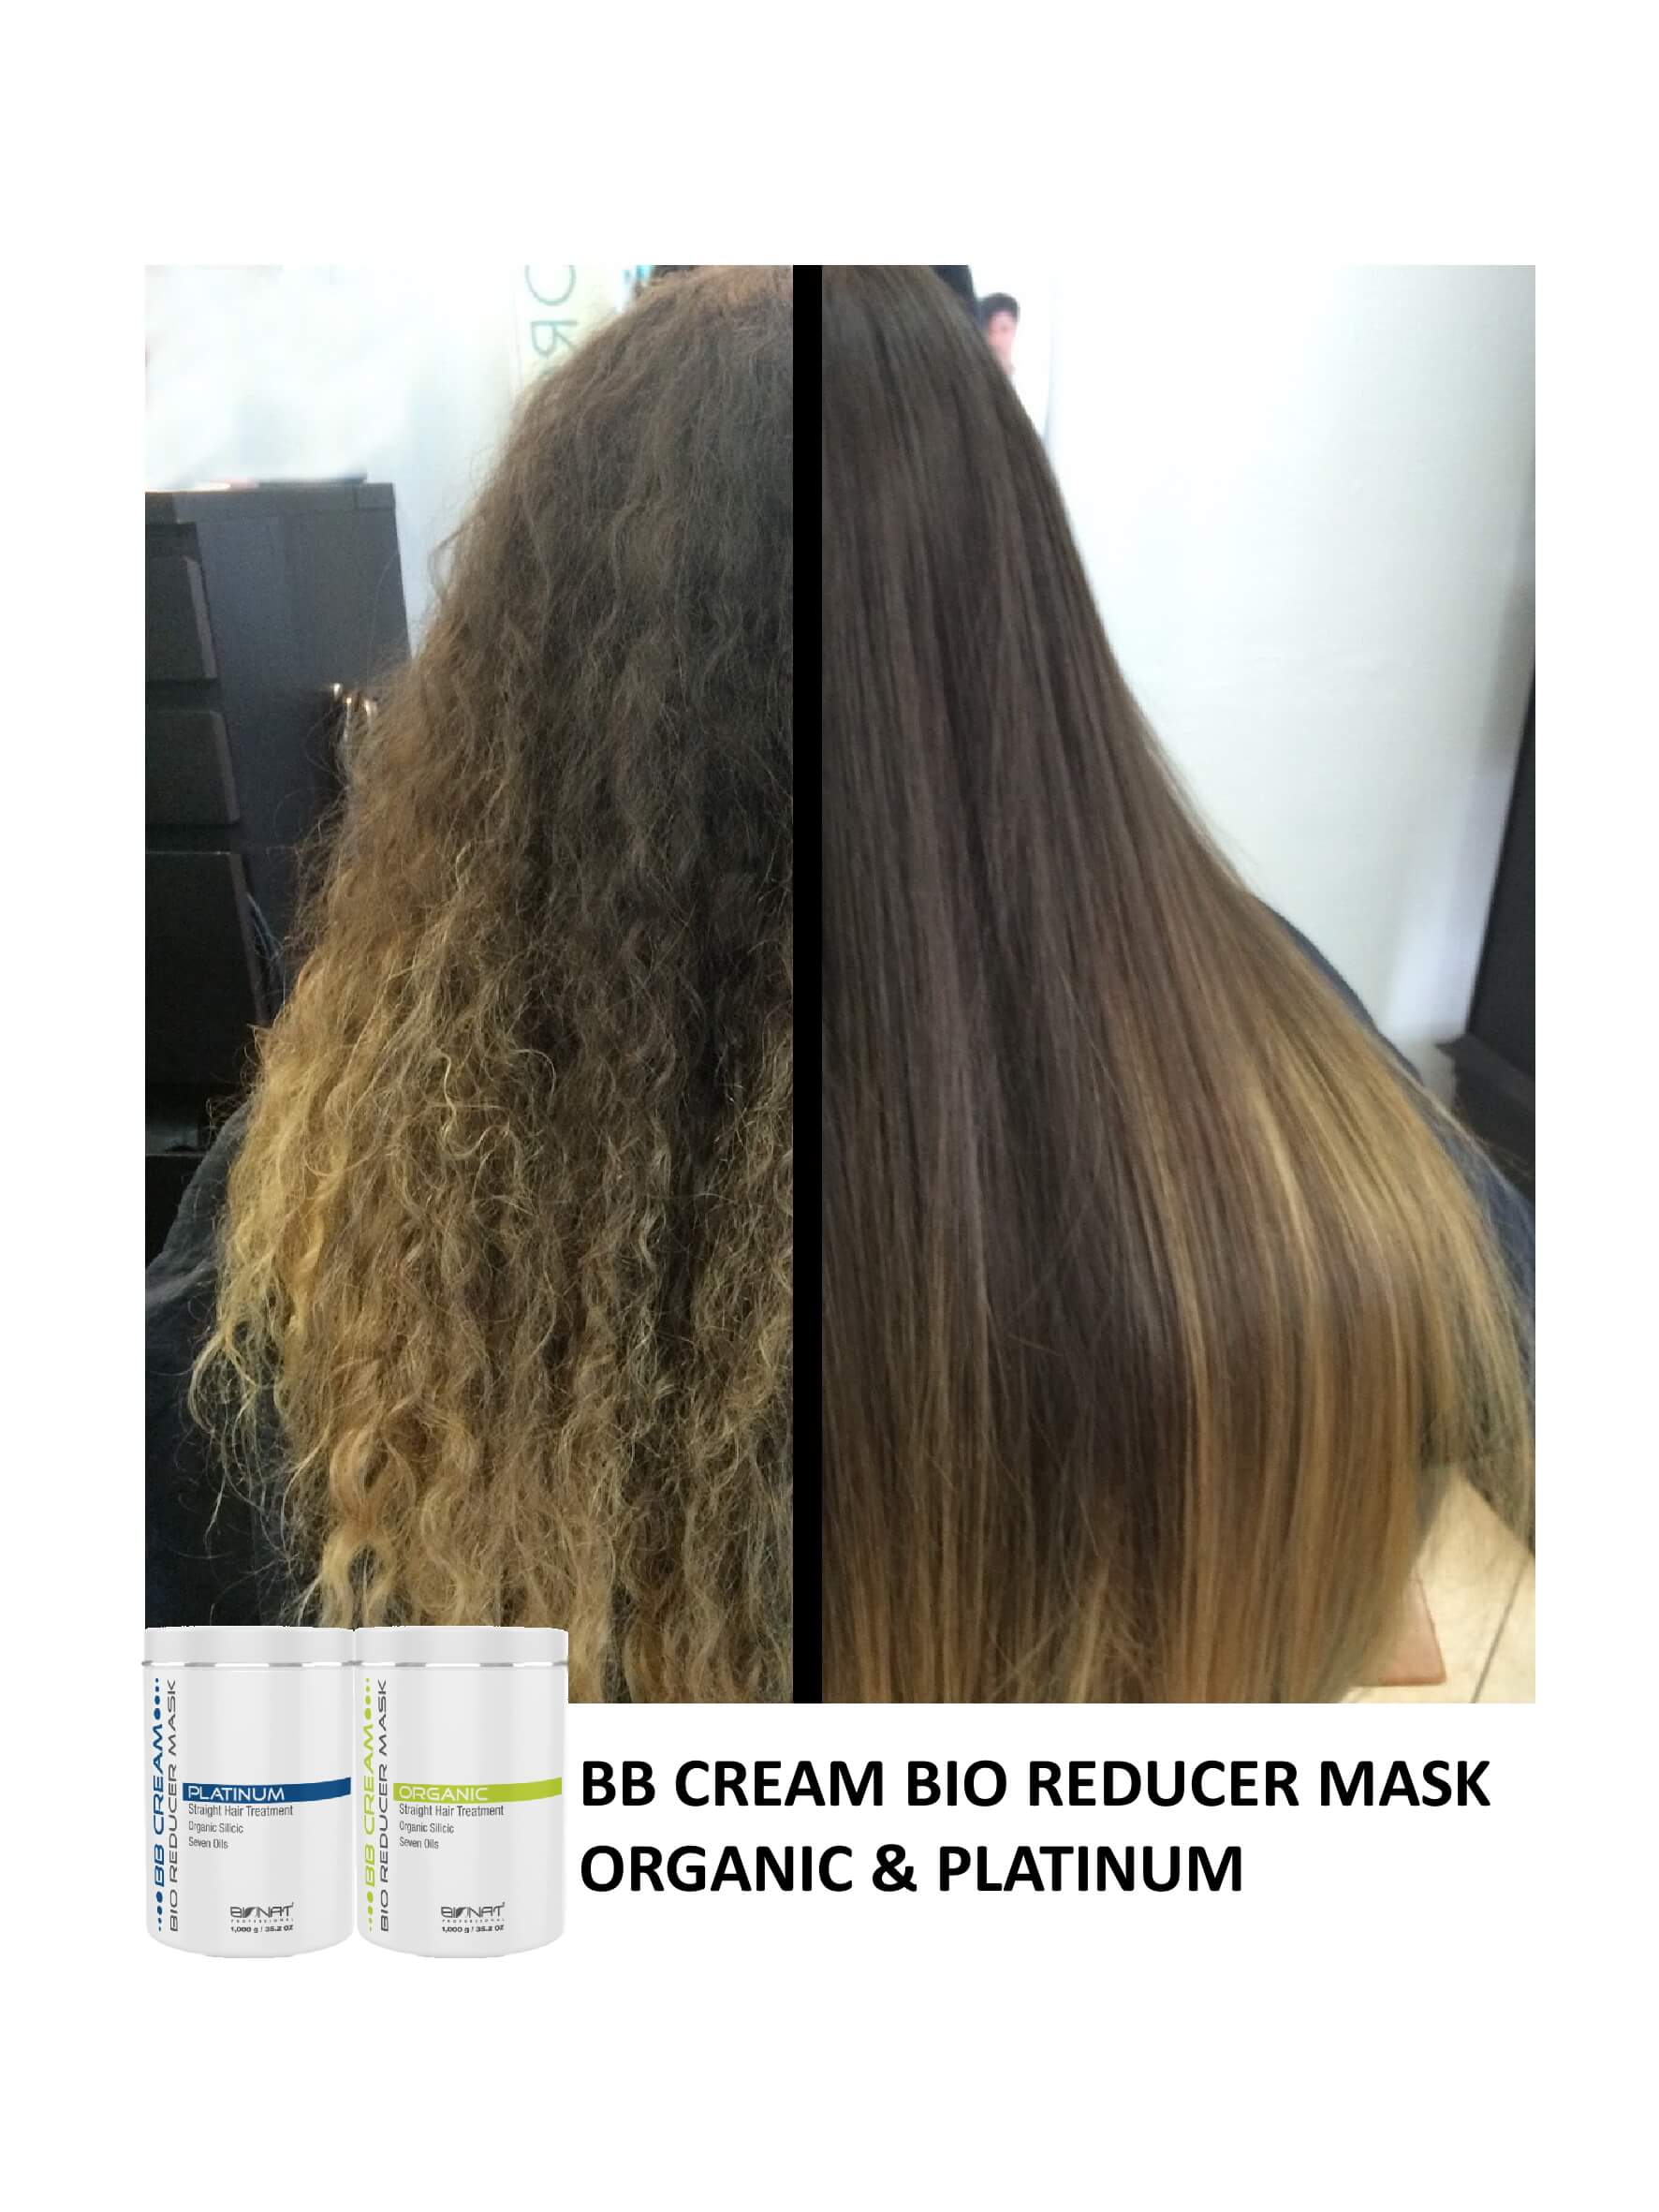 BB Cream Bio Reducer Mask Organic and Platinum